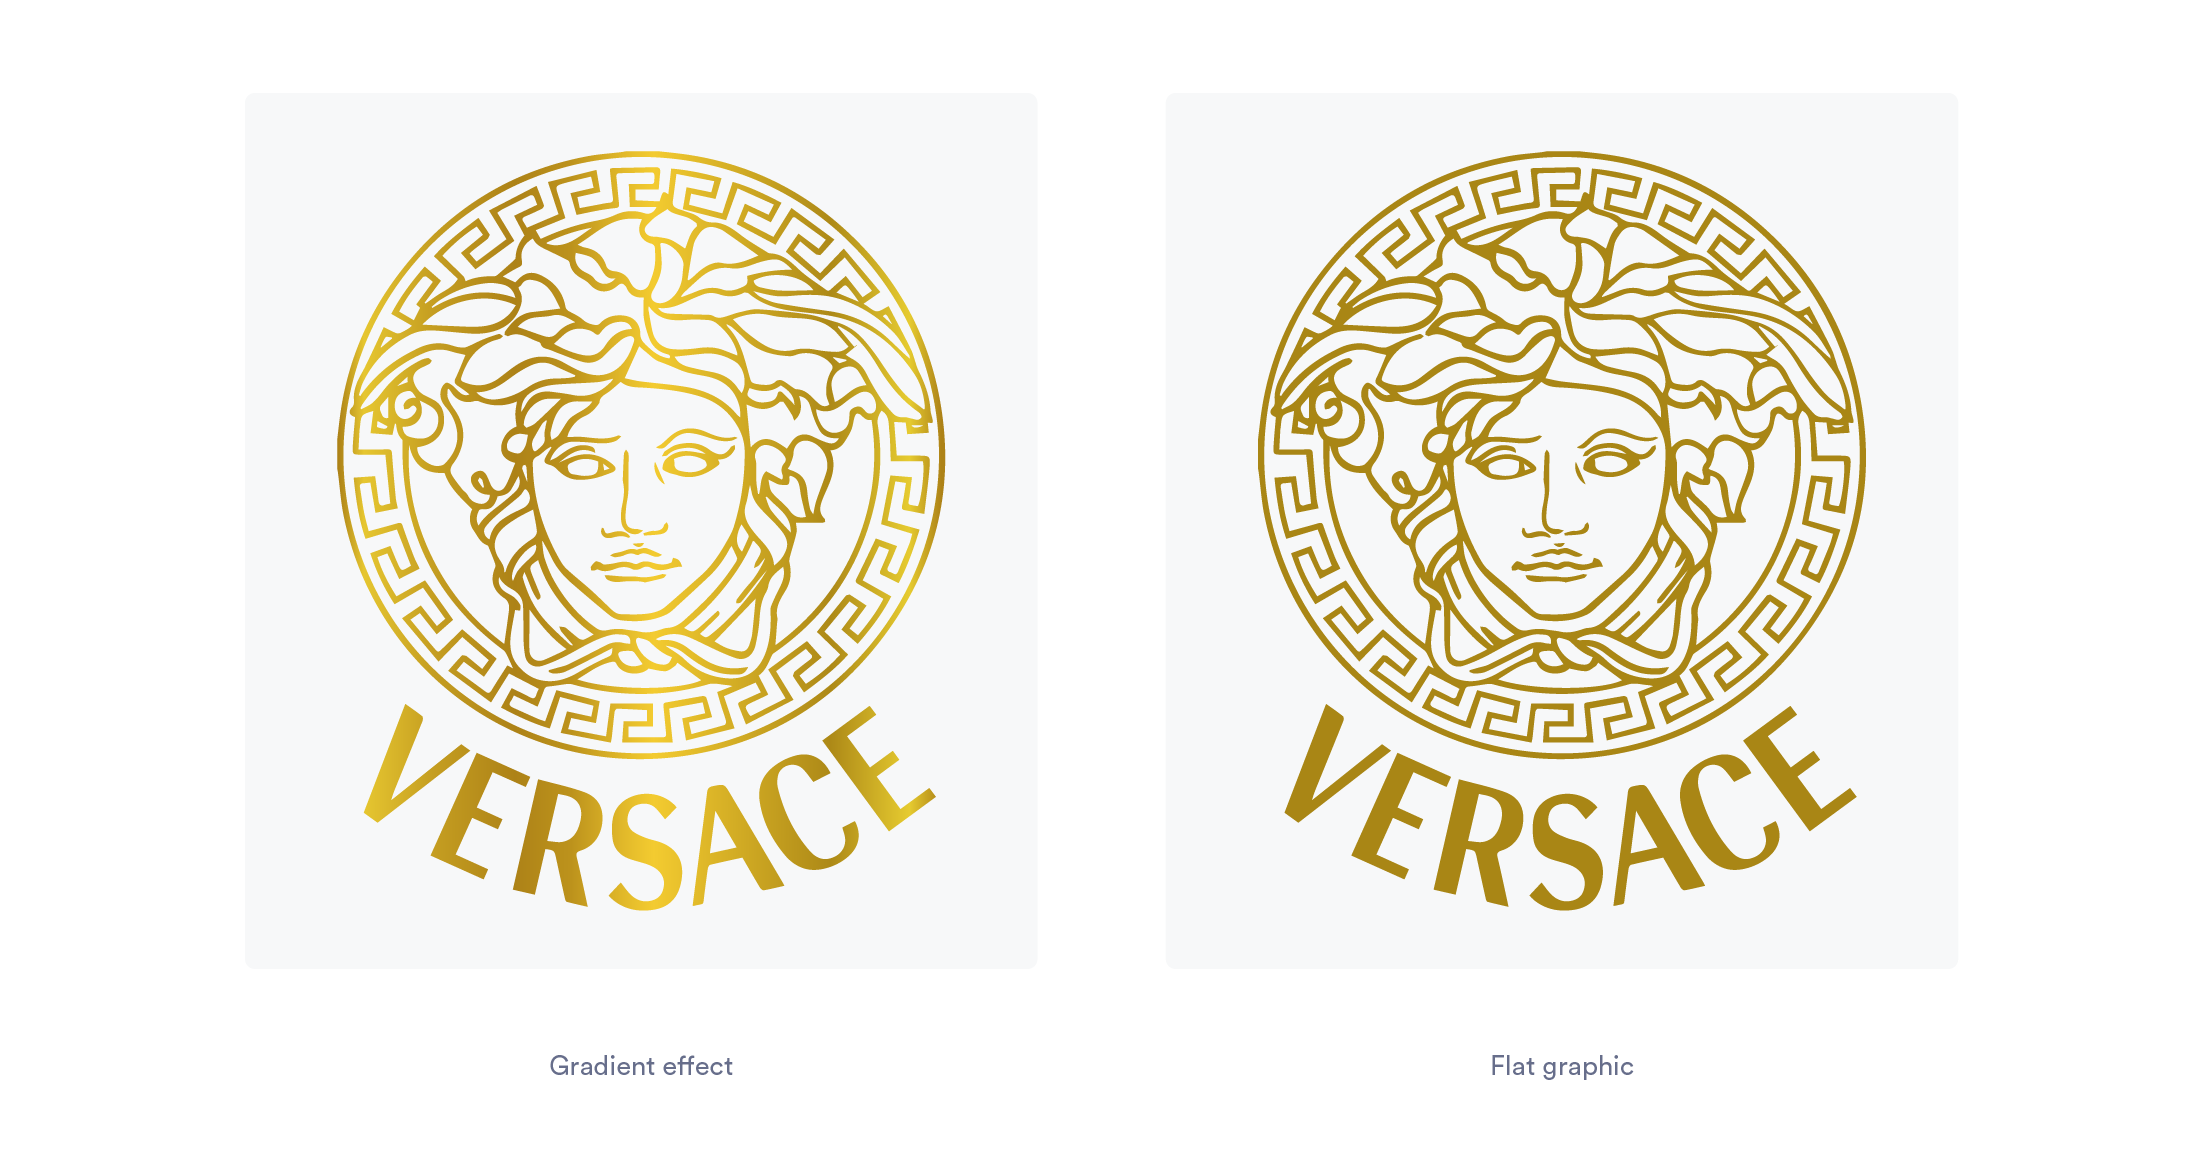 Versace logo with gold gradient